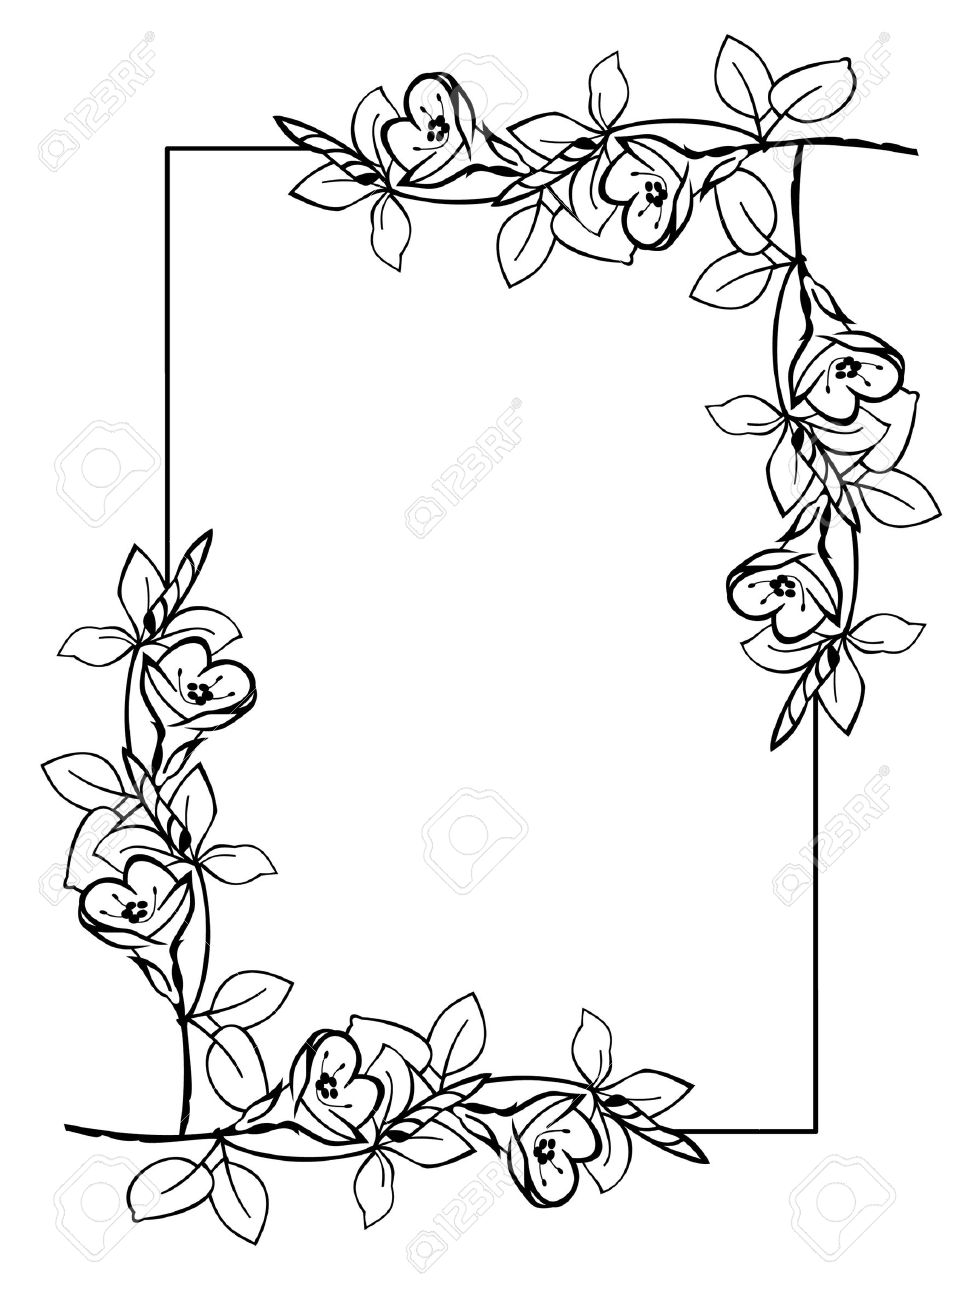 Silhouette Frame With Flowers Royalty Free Cliparts Vectors And